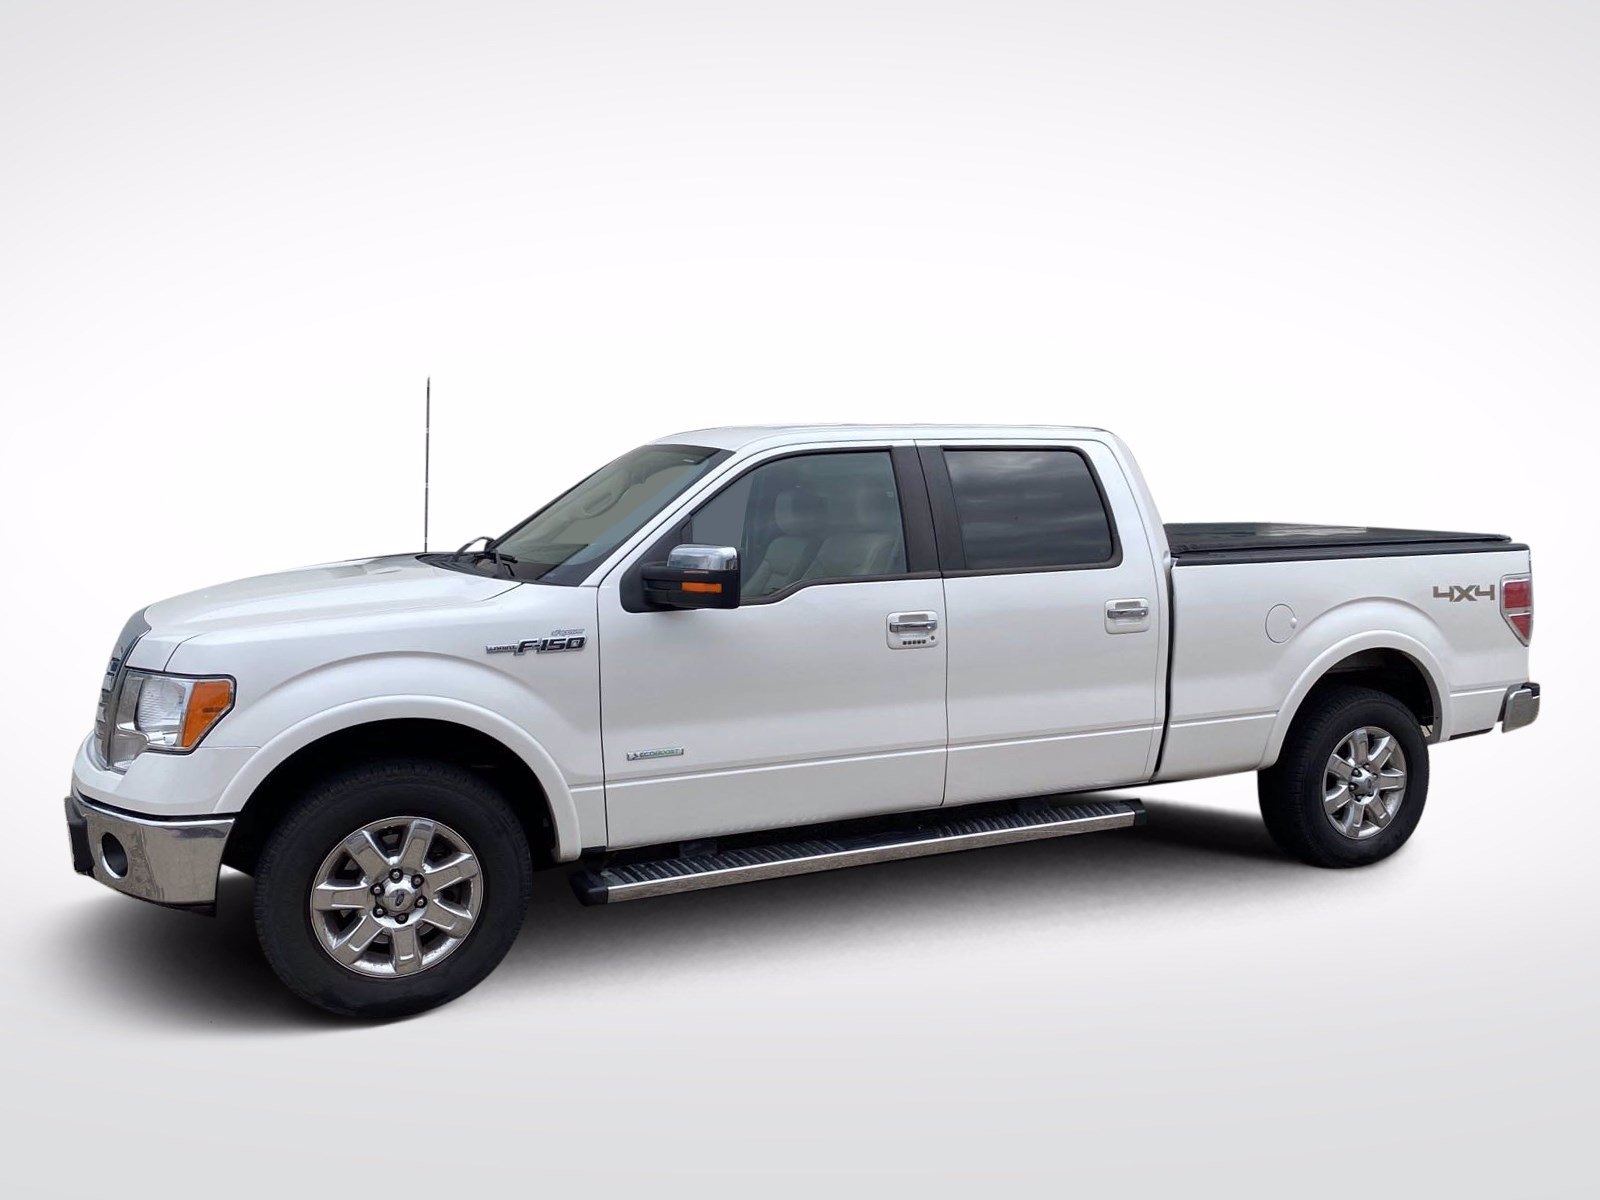 Used 2013 Ford F-150 Lariat with VIN 1FTFW1ET1DKG50919 for sale in Baxter, Minnesota